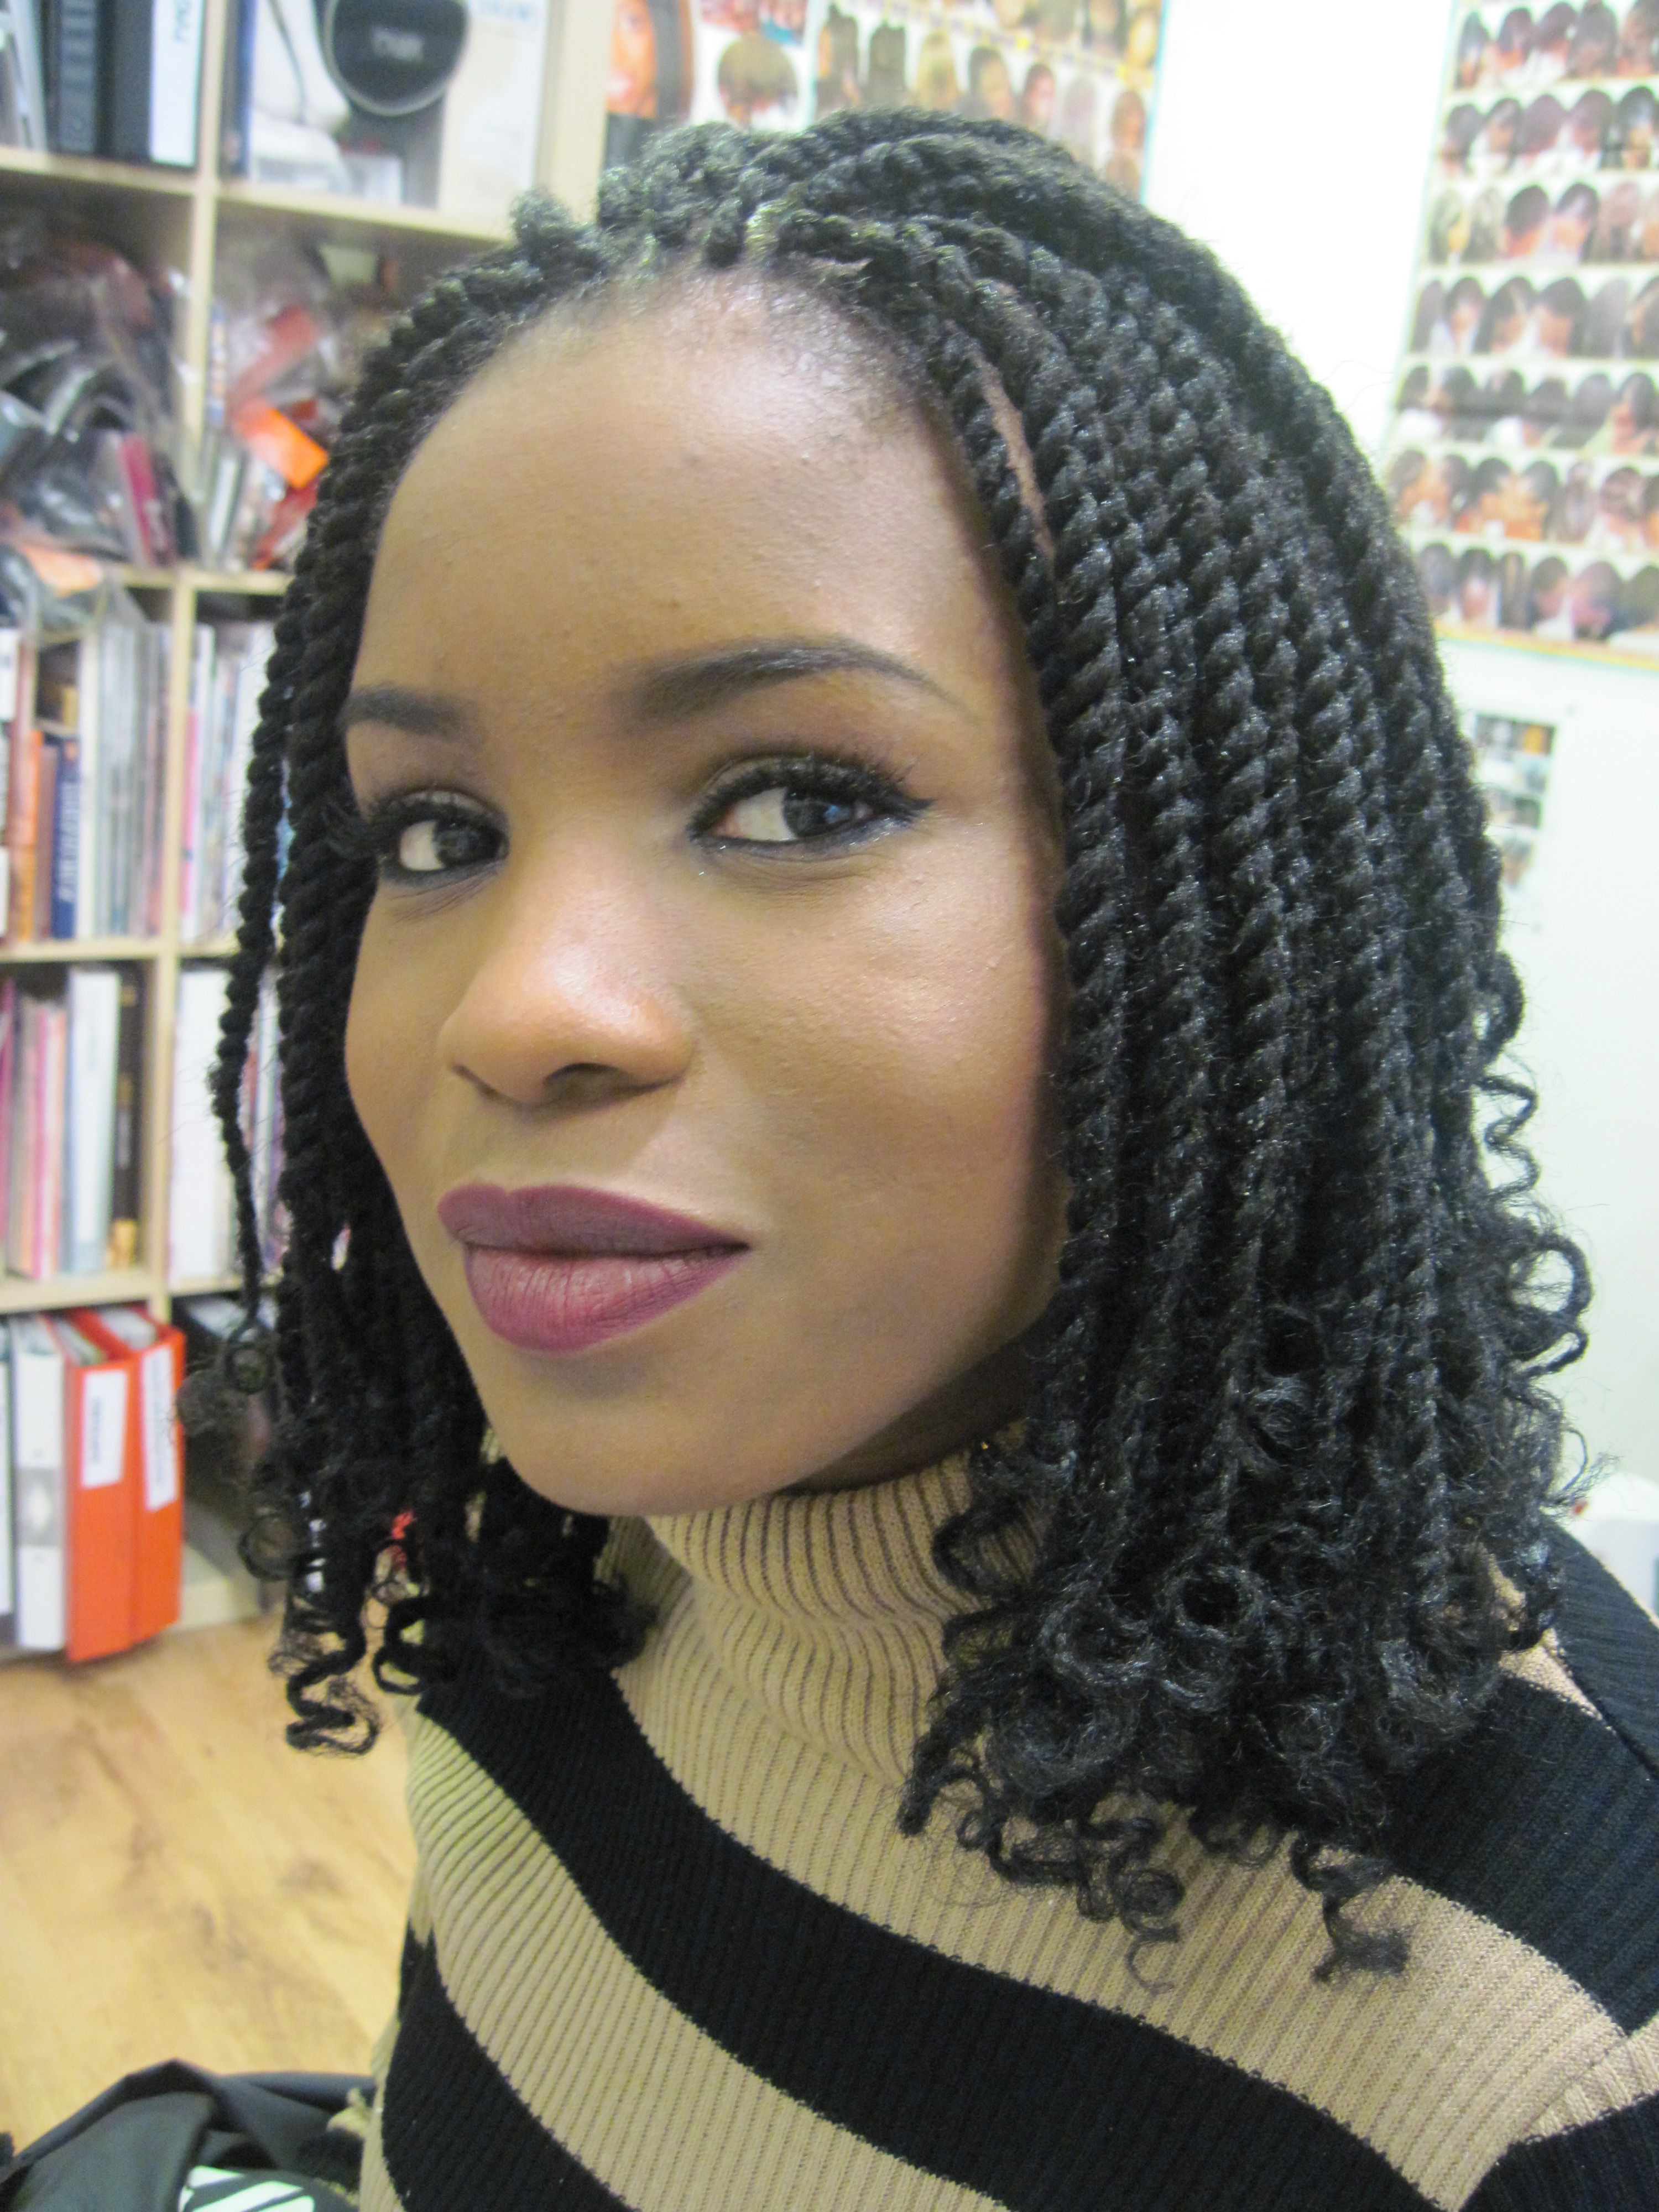 Hairstyles : Chic Braided Bob Hairstyle Winsome My Short Throughout Most Up To Date Short And Chic Bob Braid Hairstyles (Gallery 15 of 20)